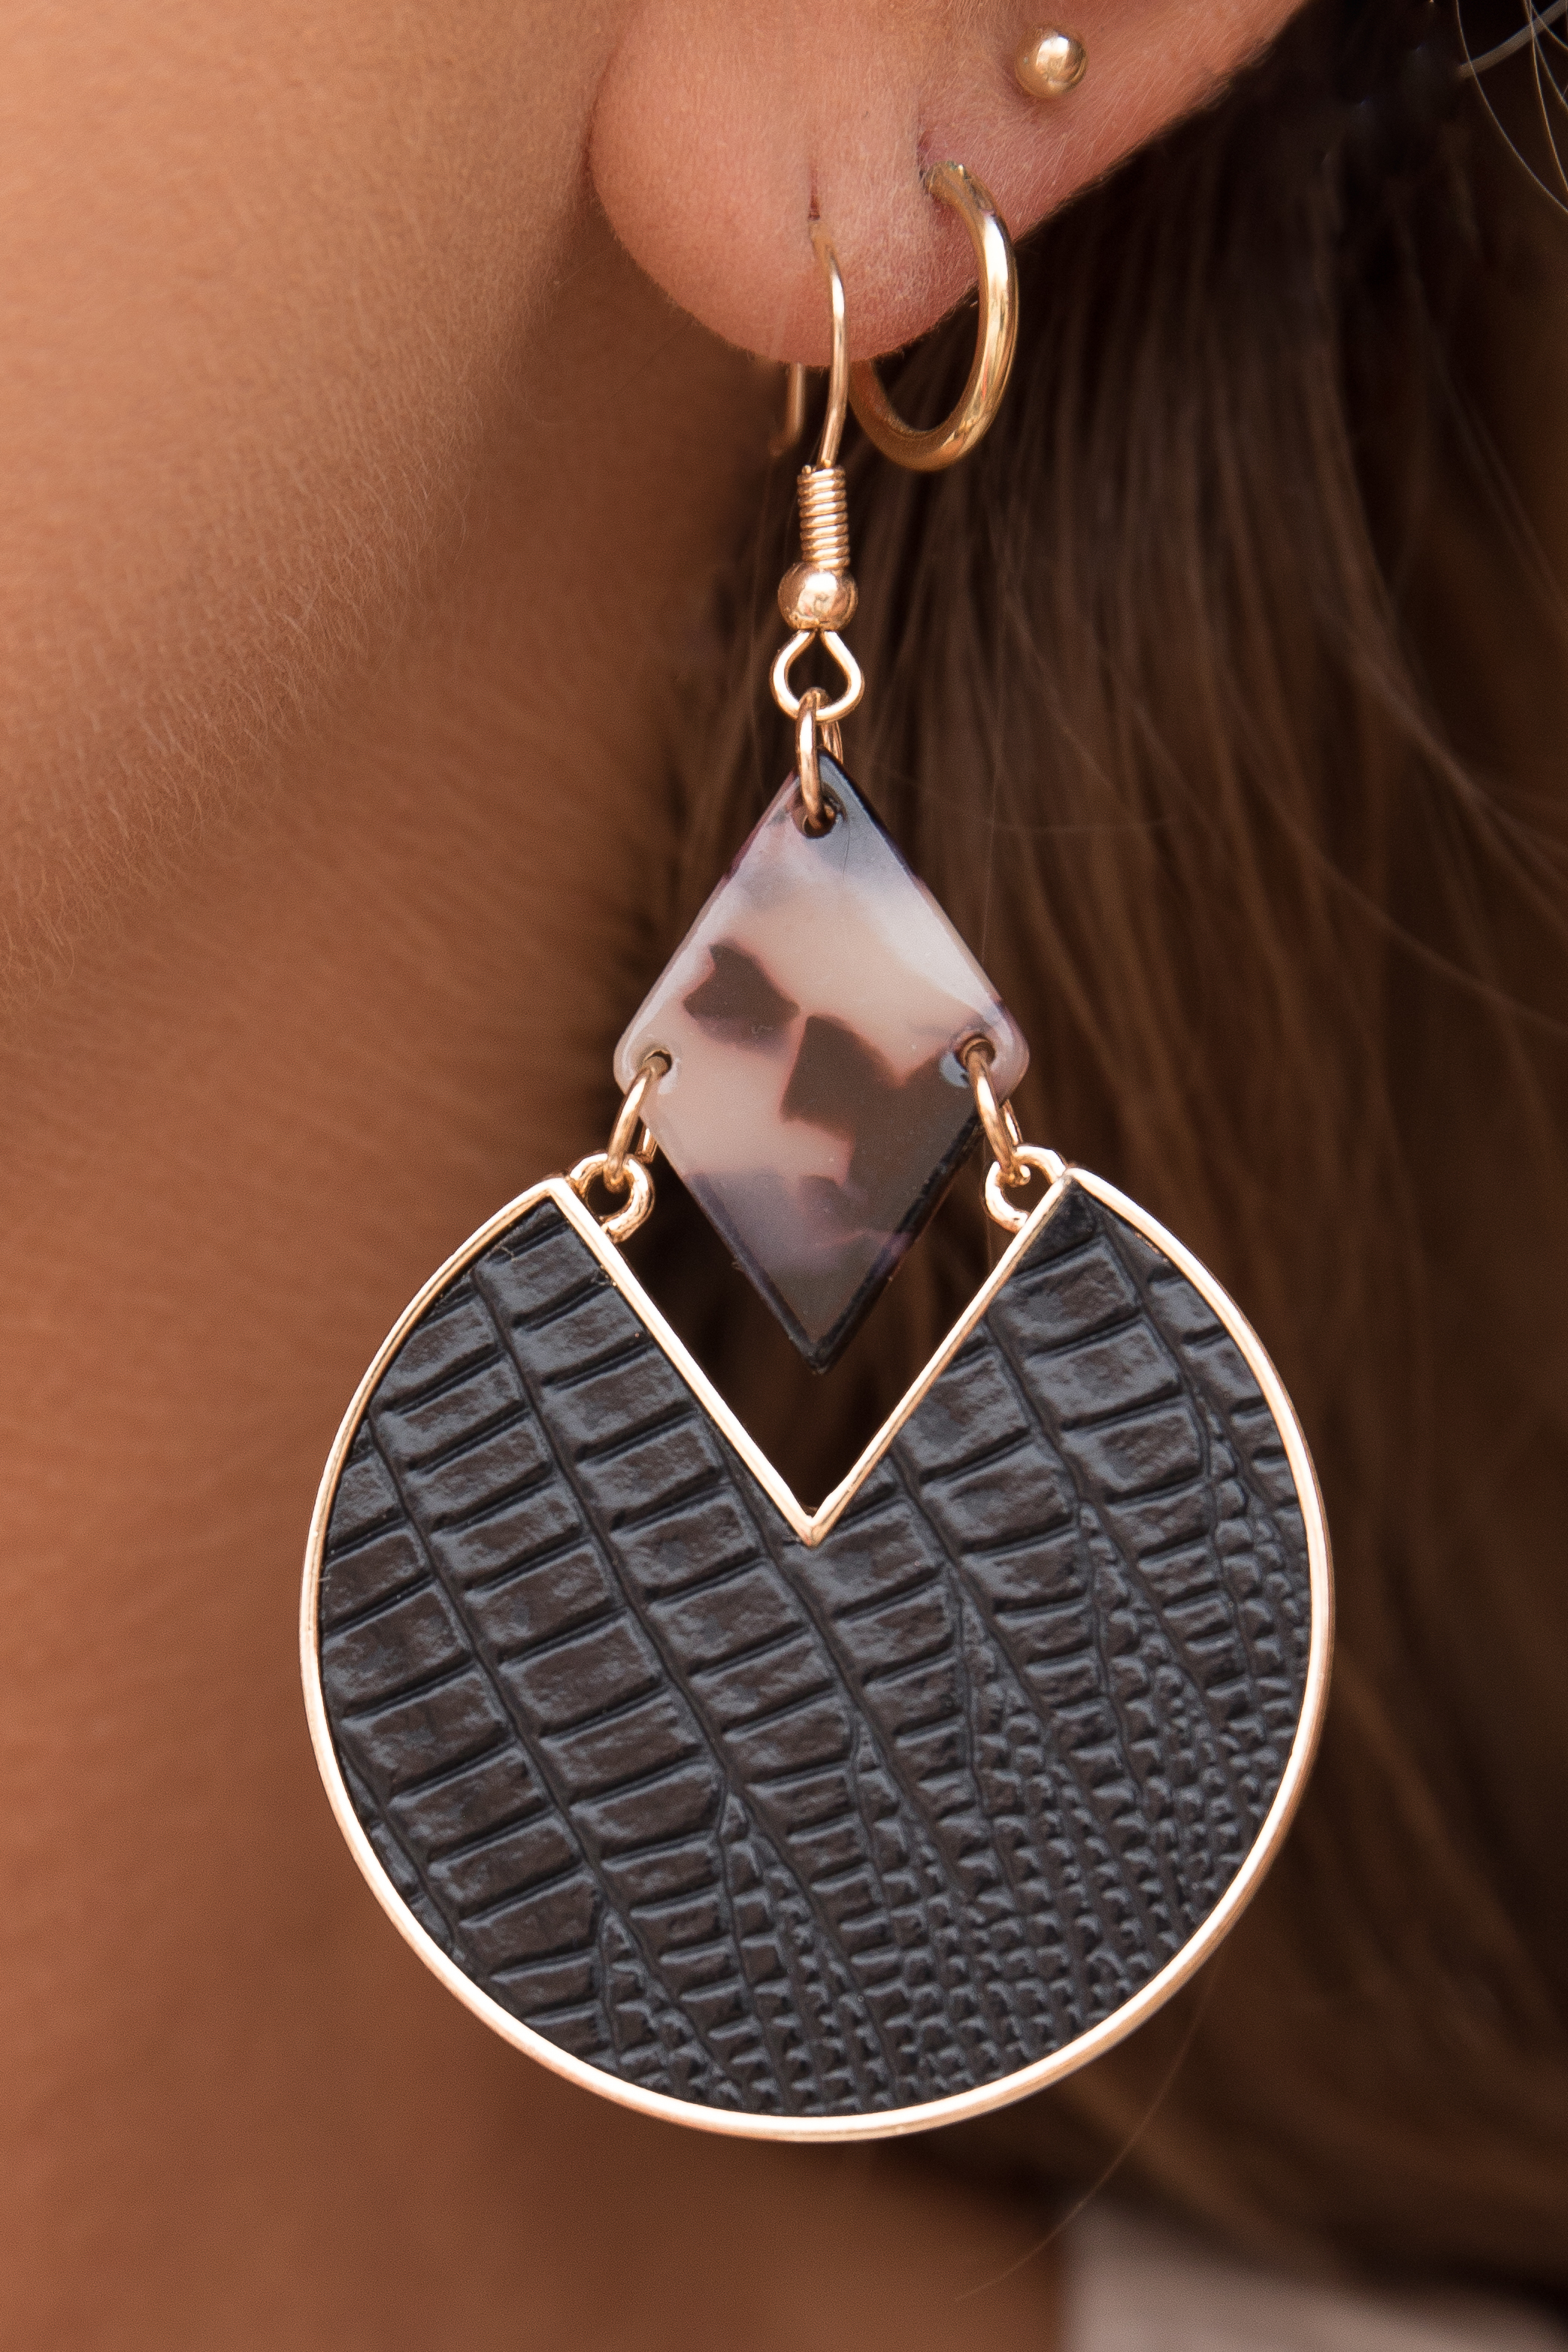 Black and Gold Geometric Earrings with Faux Leather Detail